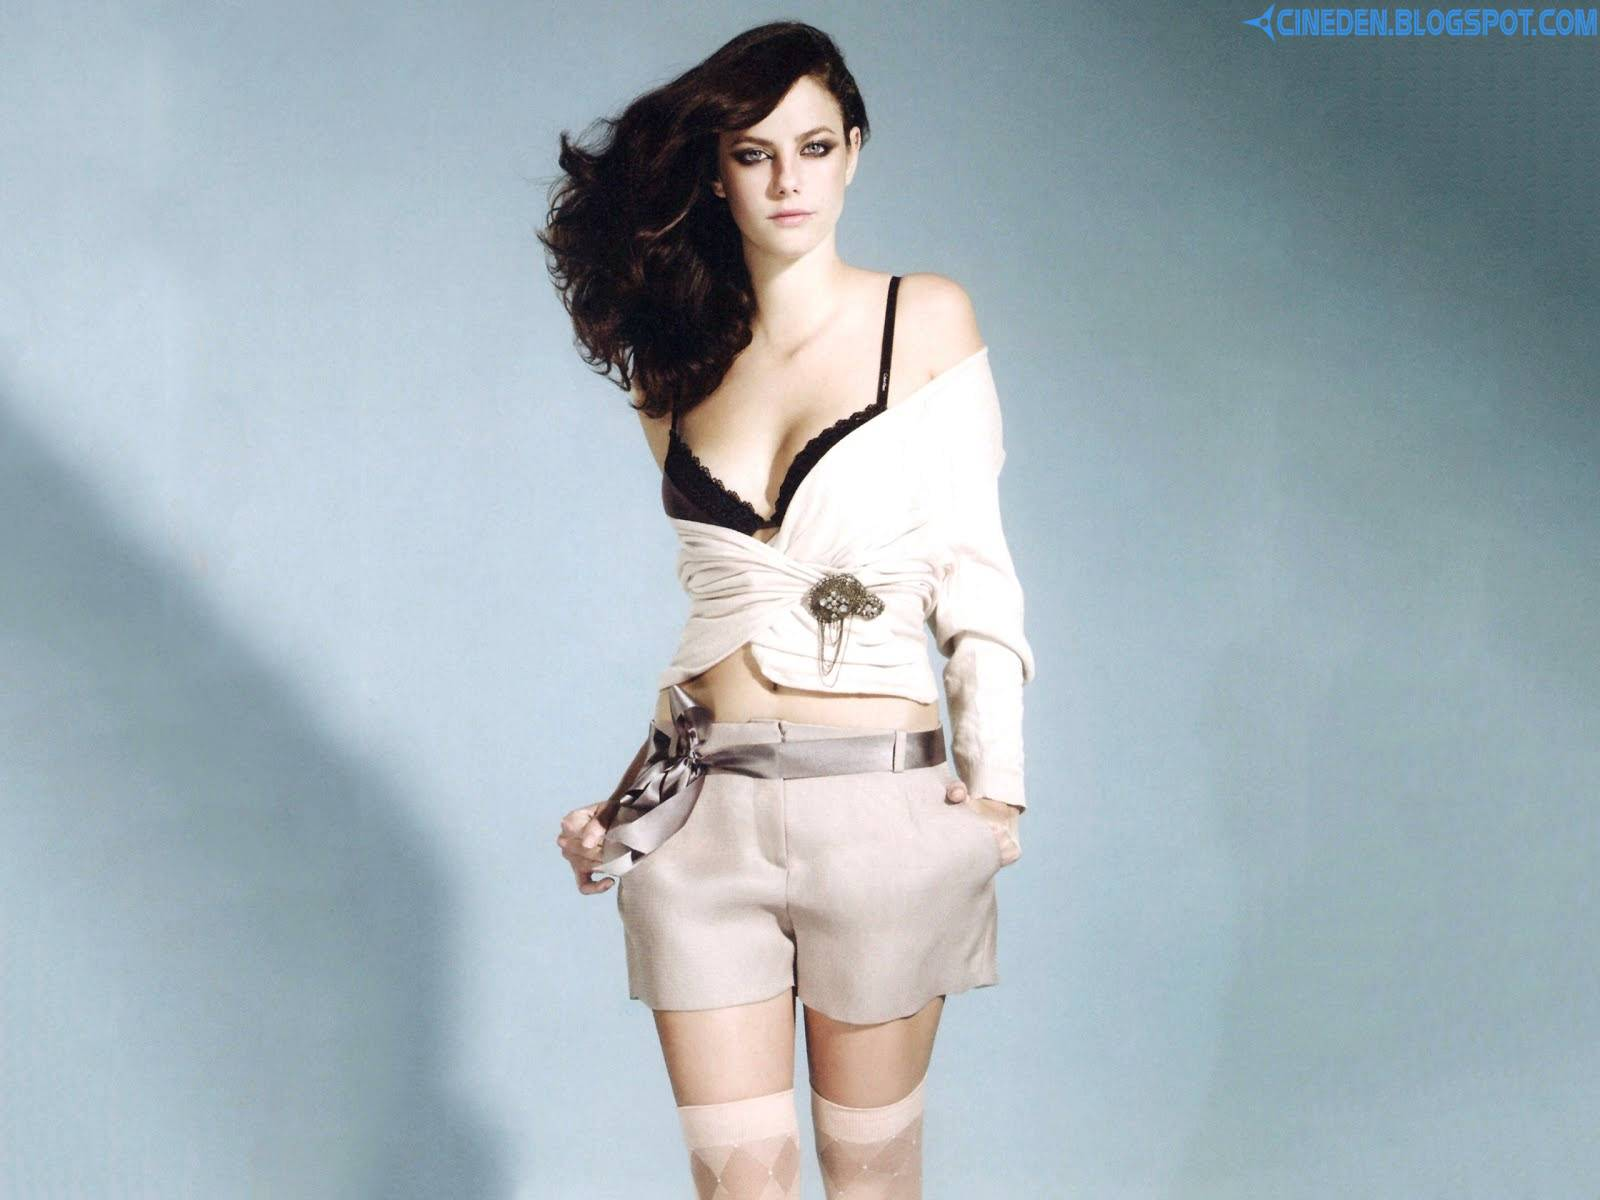 No onscreen nudity for Kaya Scodelario